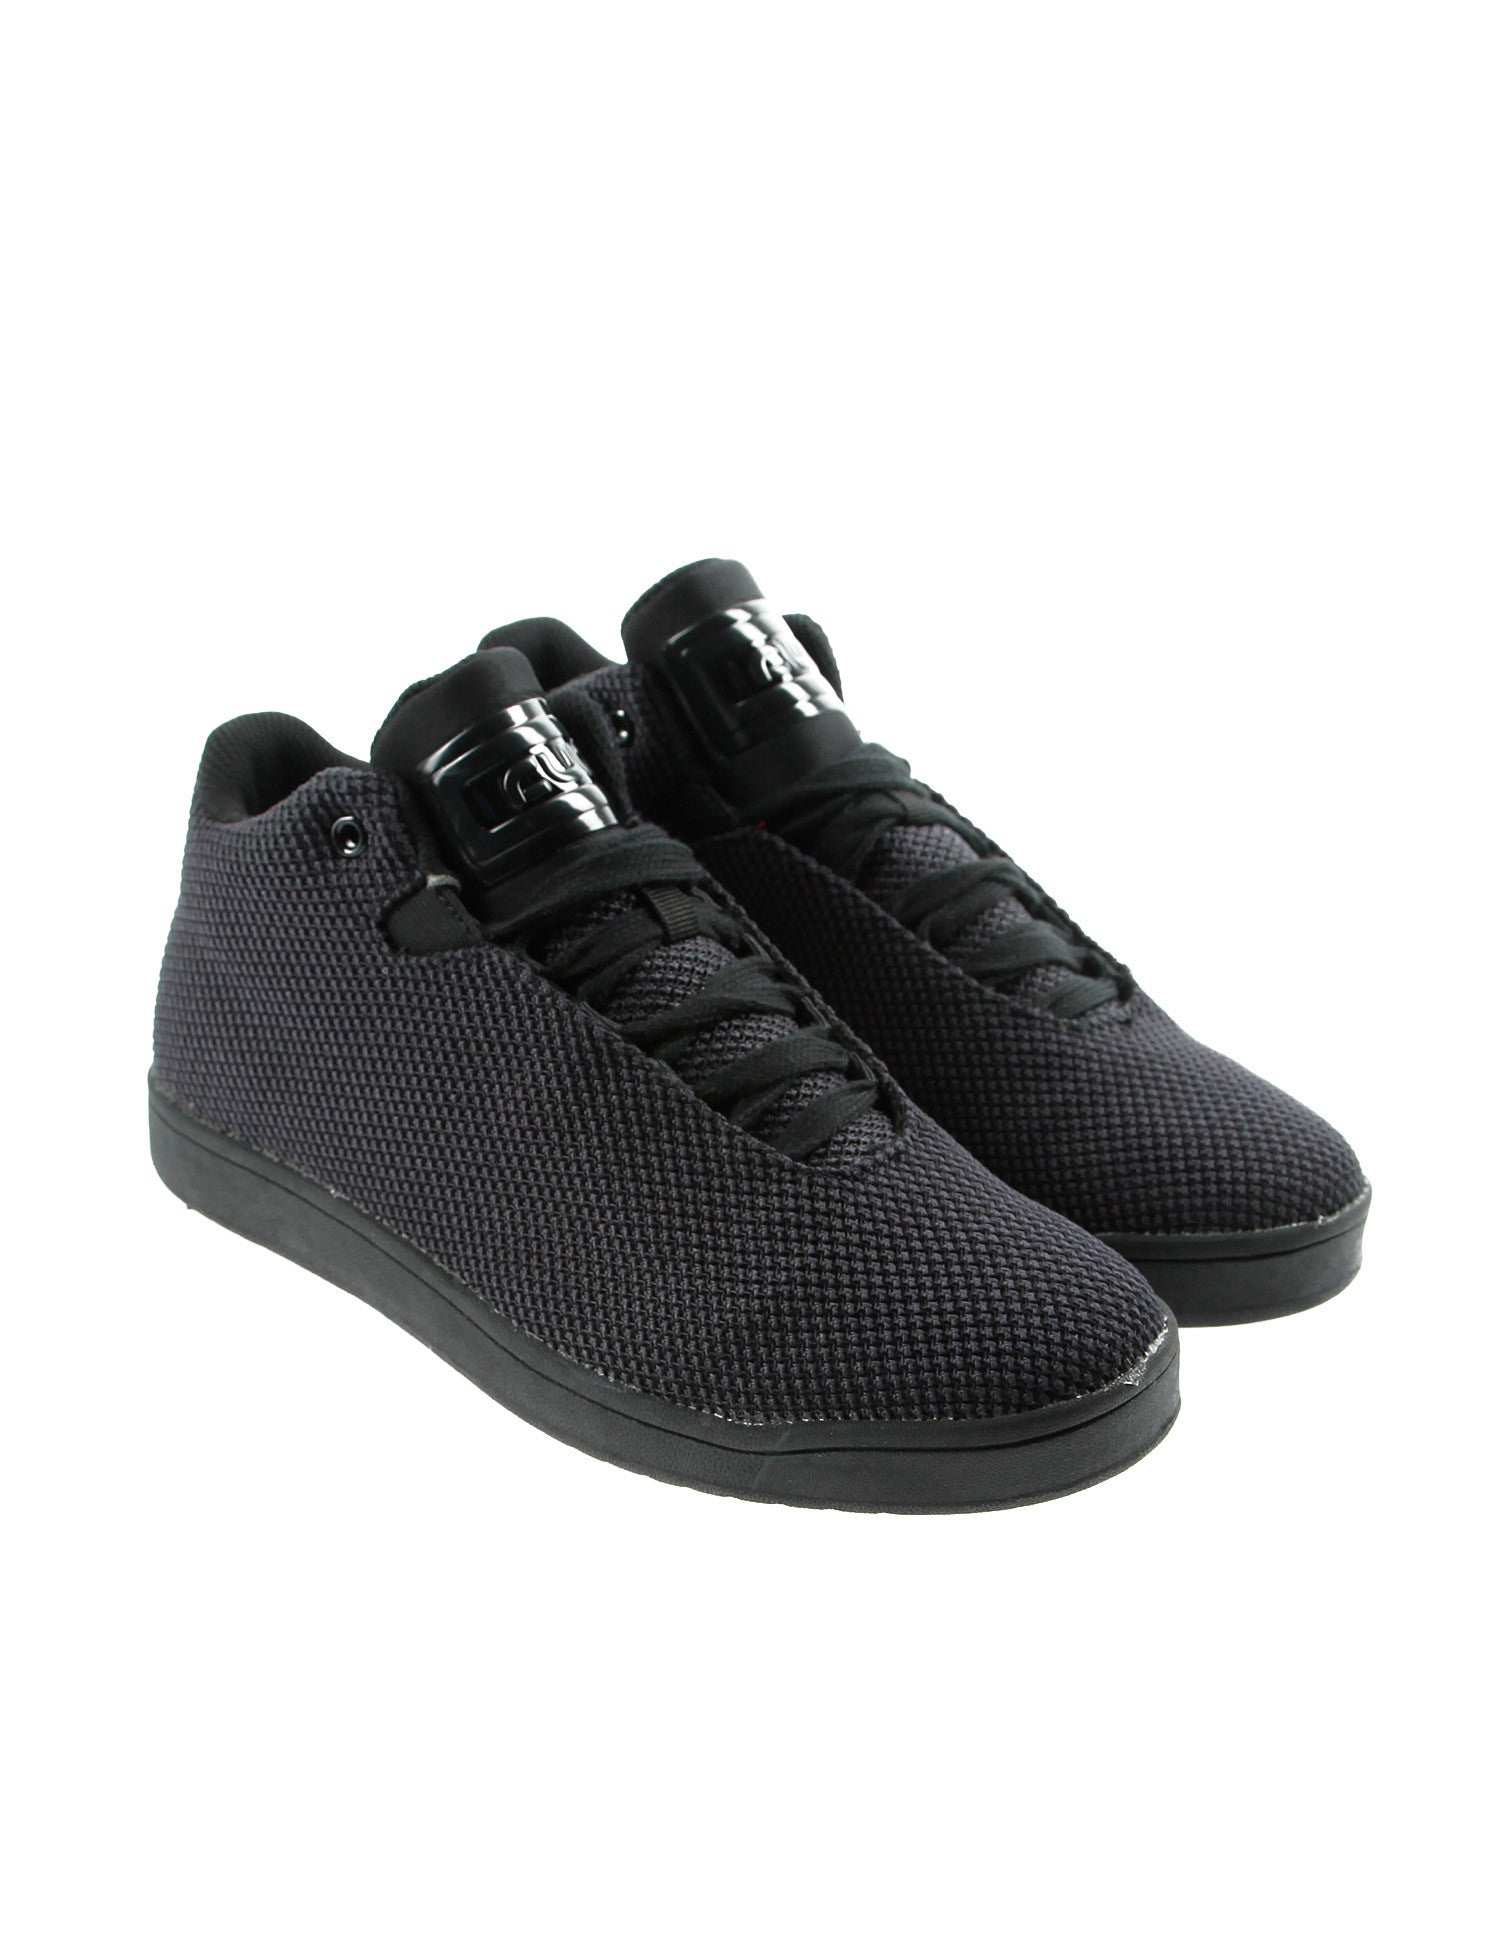 Cultz Mid Top Shoes 150301-4 Black